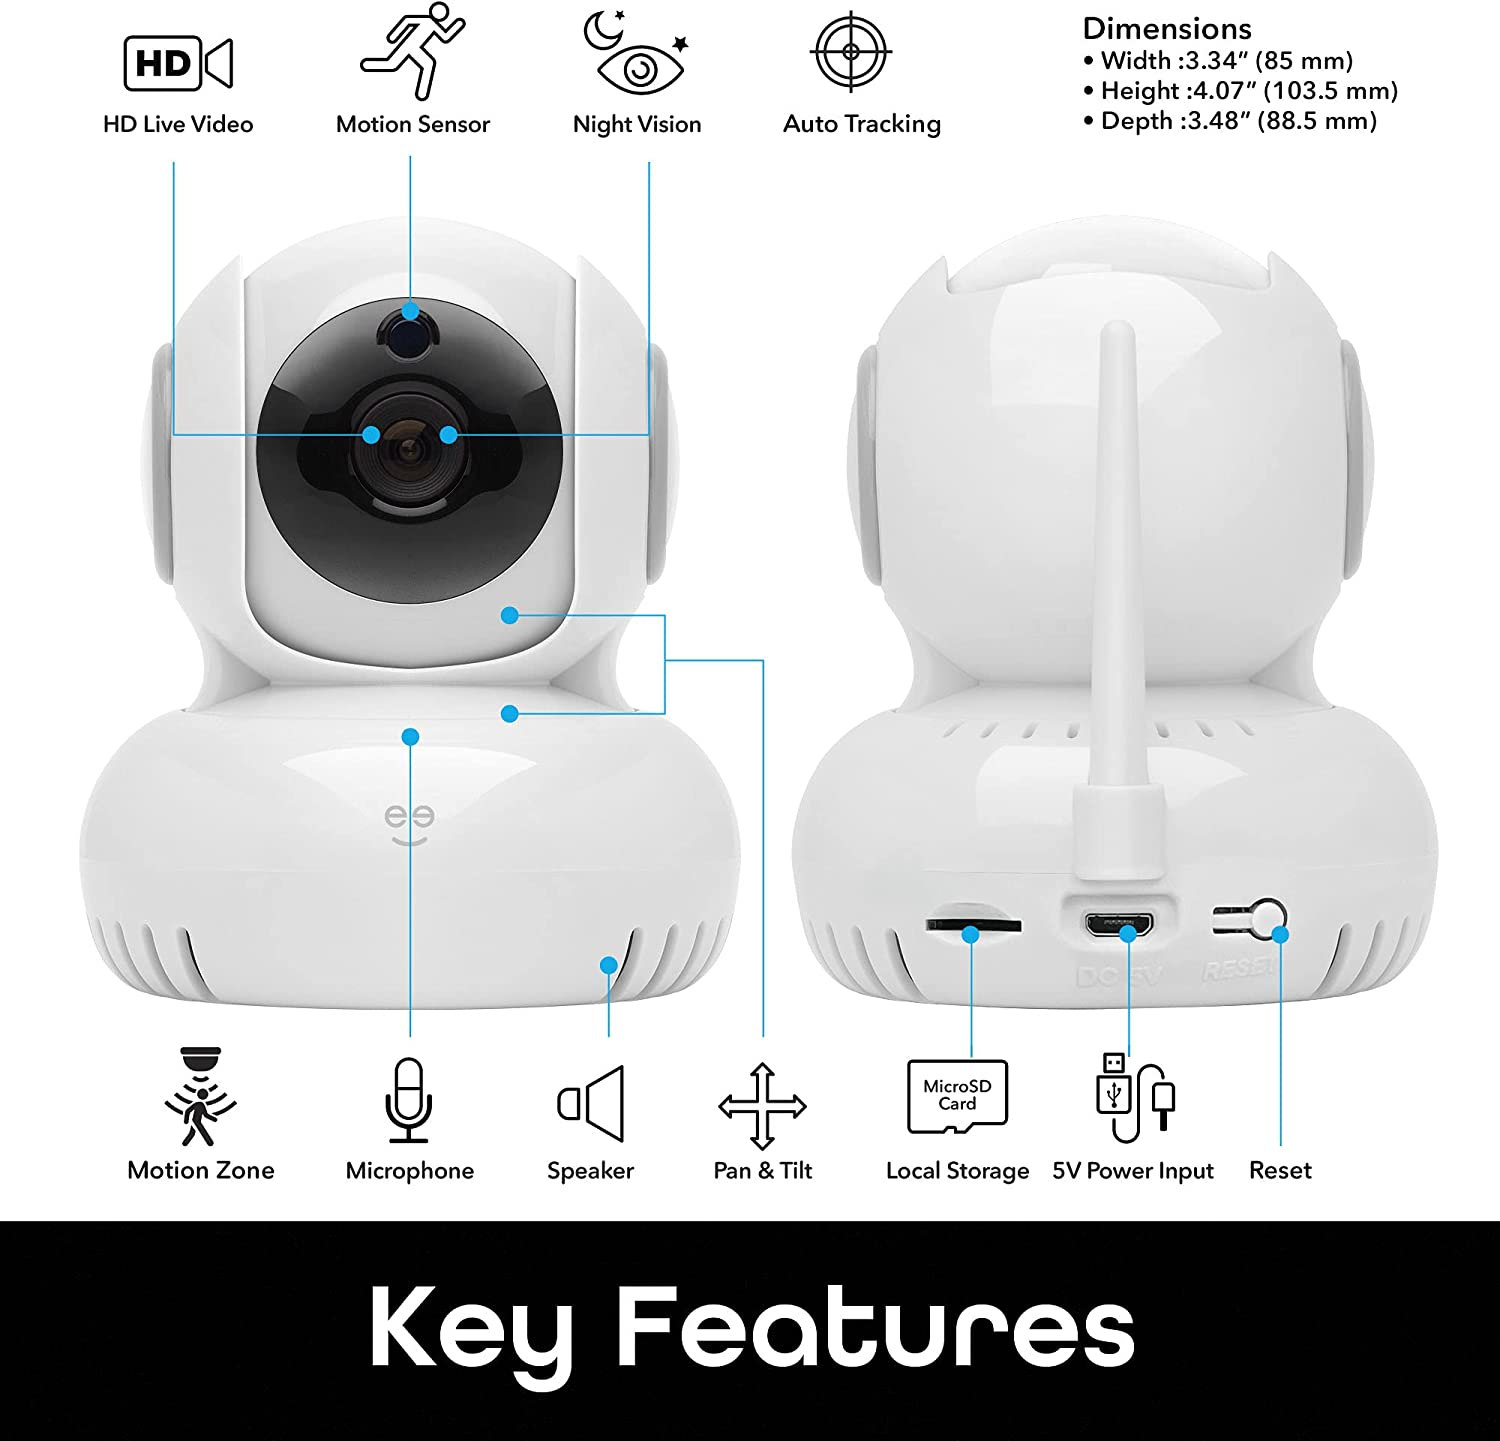 Geeni Sentinel 1080p Wireless Indoor Surveillance Camera with Auto Tracking Alerts, Motion Zones, Pan/Tilt/Zoom, 2-Way Talk, Night Vision, Works with Alexa and Google Home, (White)